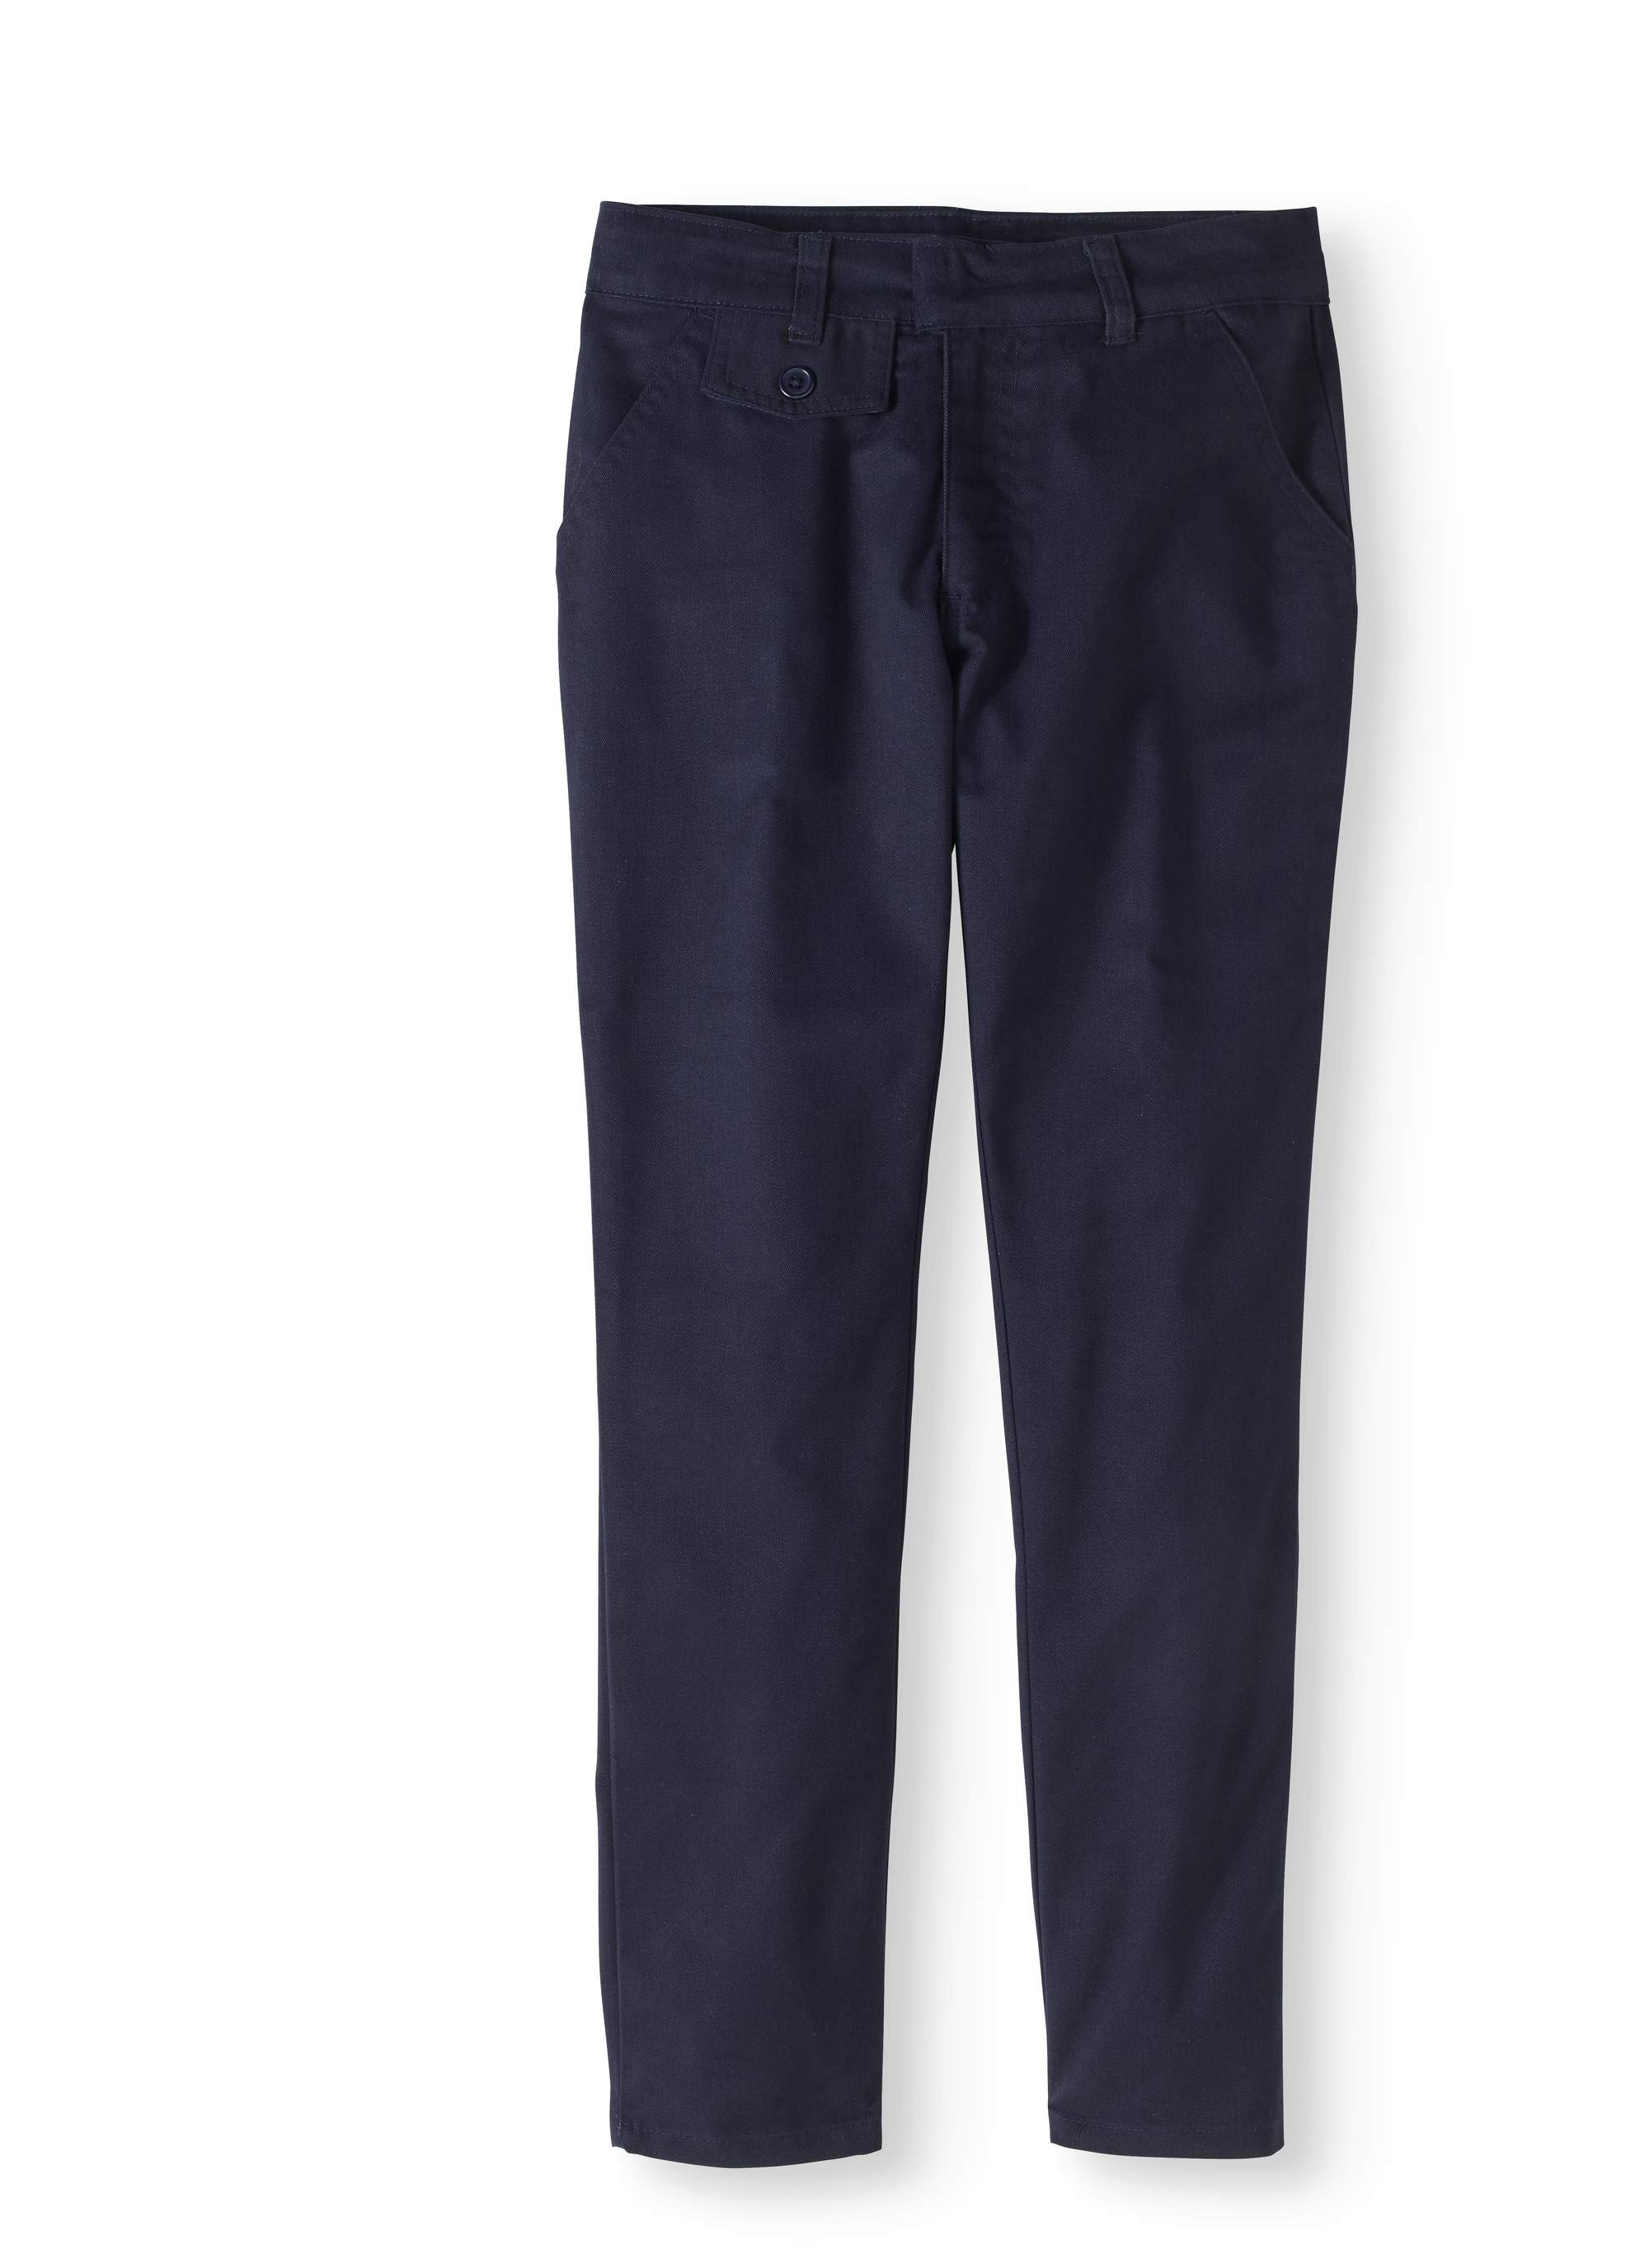 Genuine Uniform Girls' Flat Front Pant